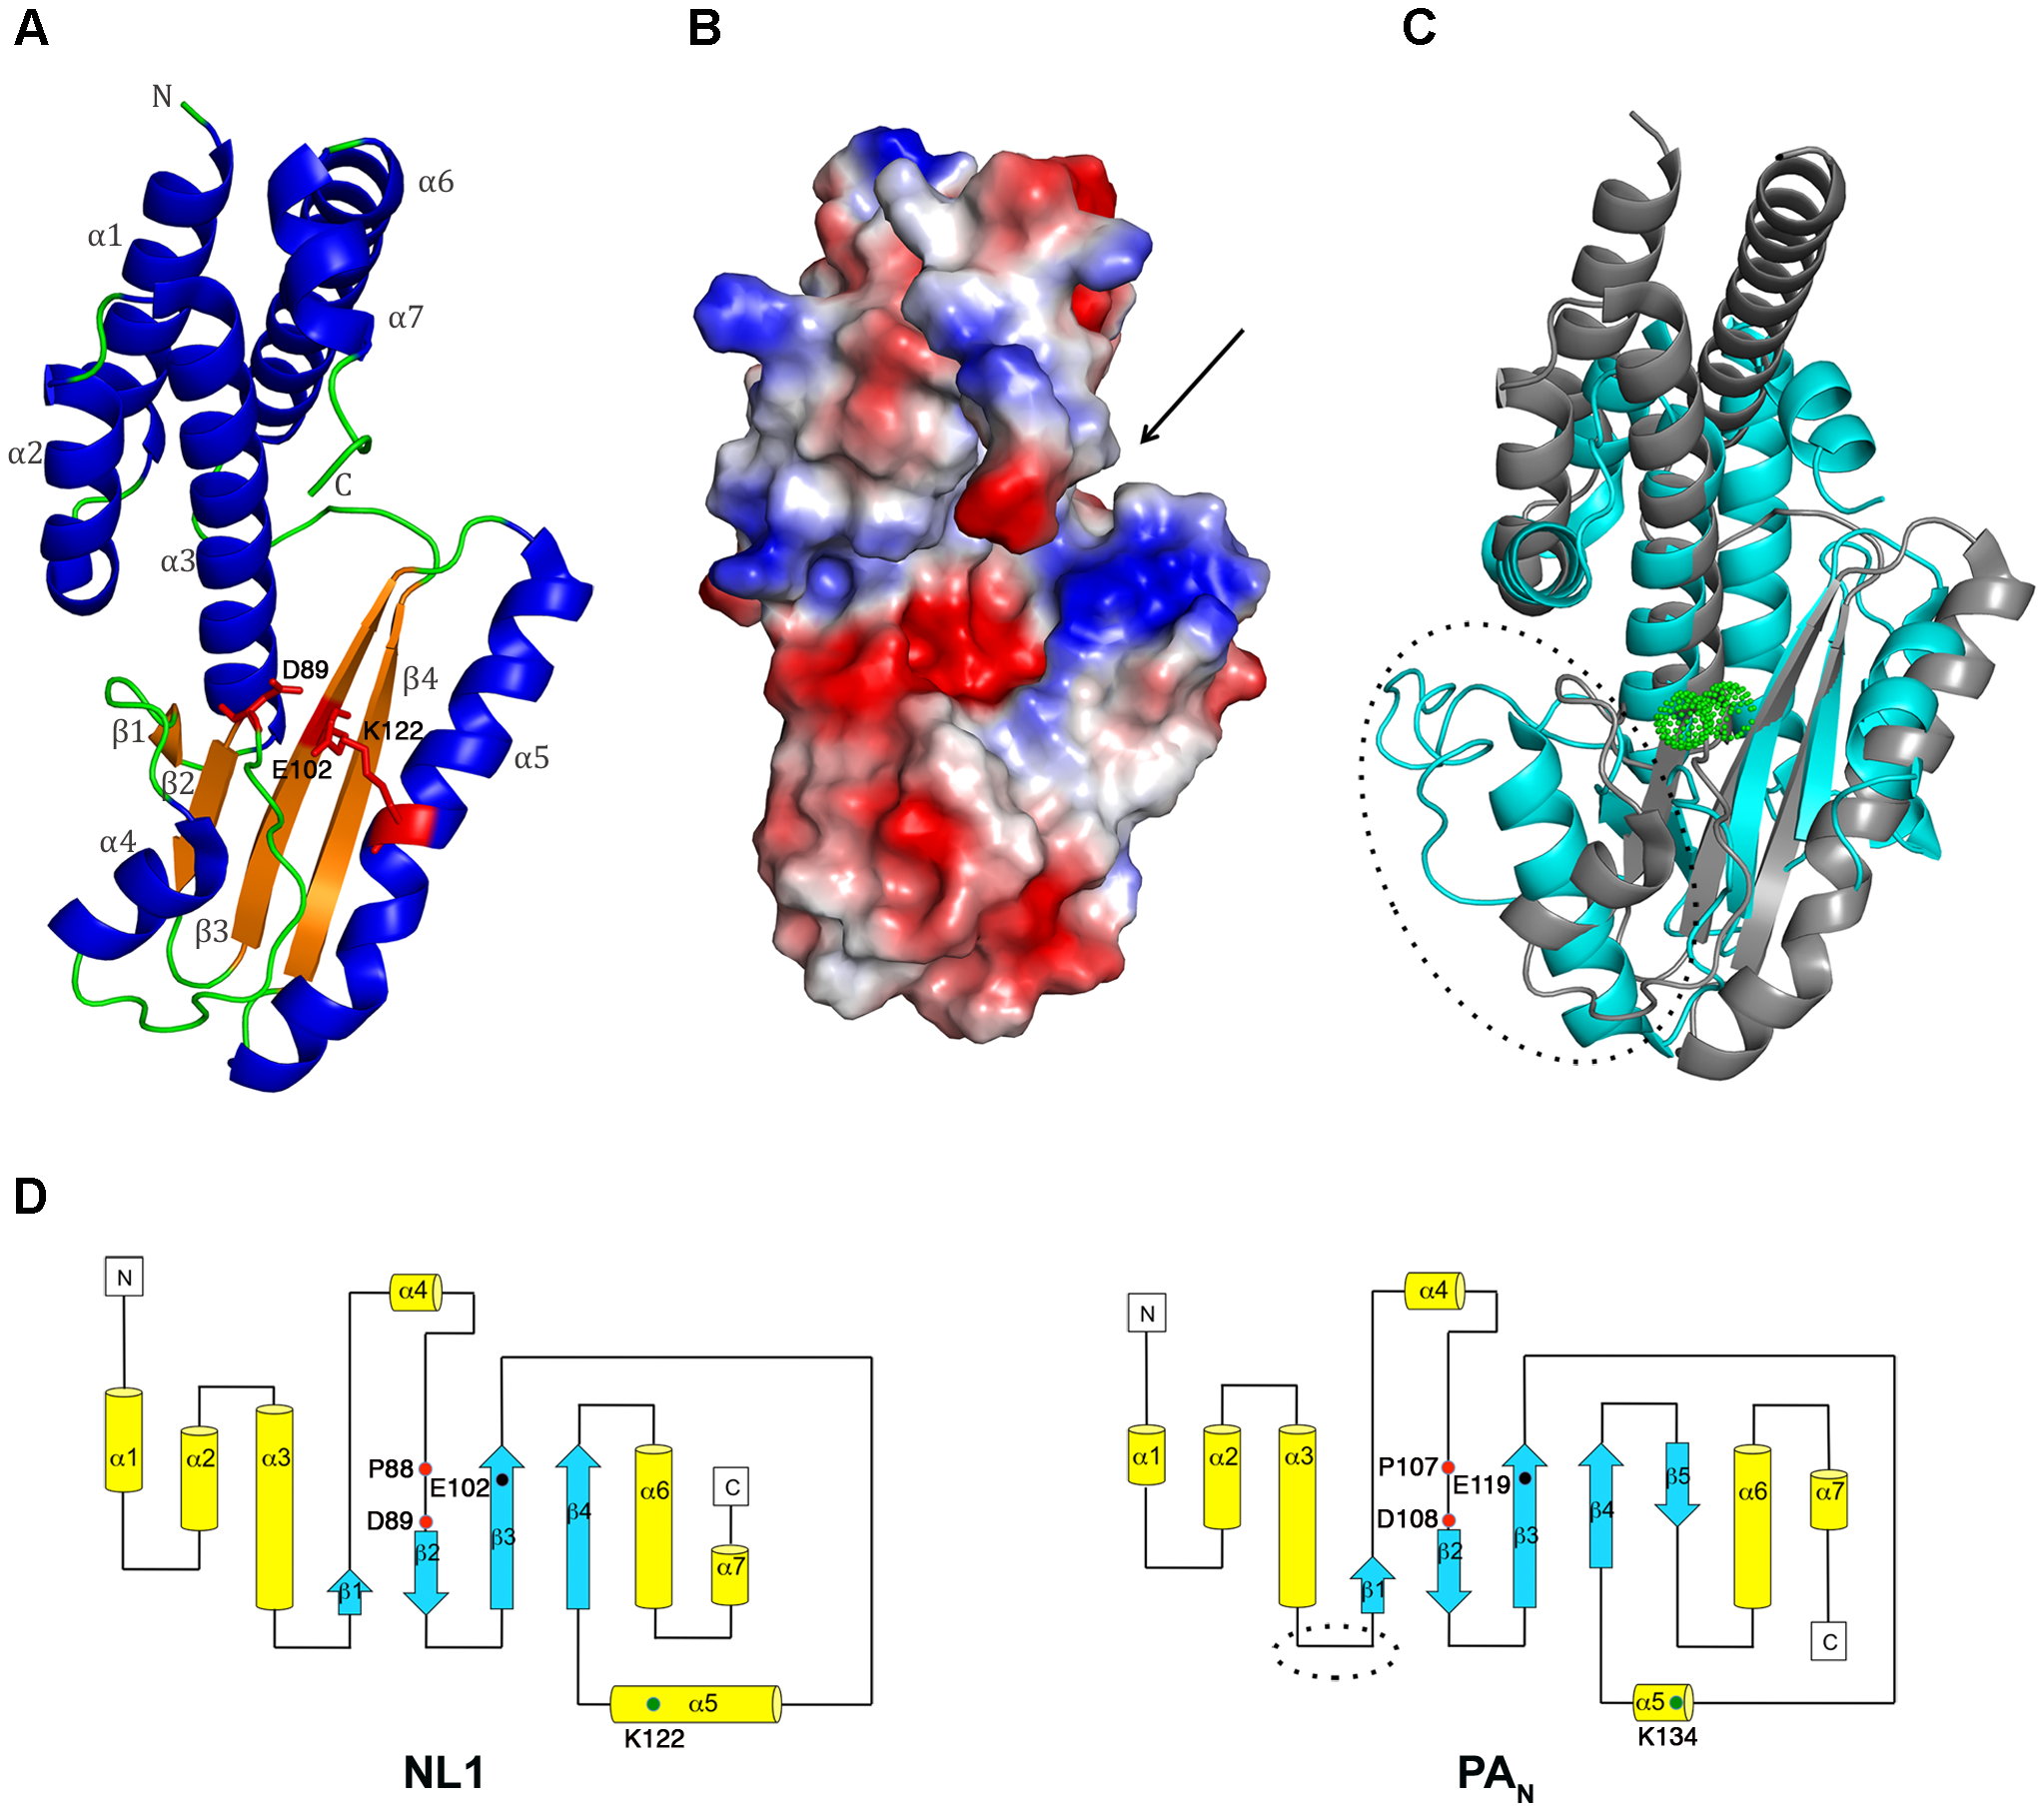 NL1 structure and comparisons with the influenza PA<sub>N</sub> structure.